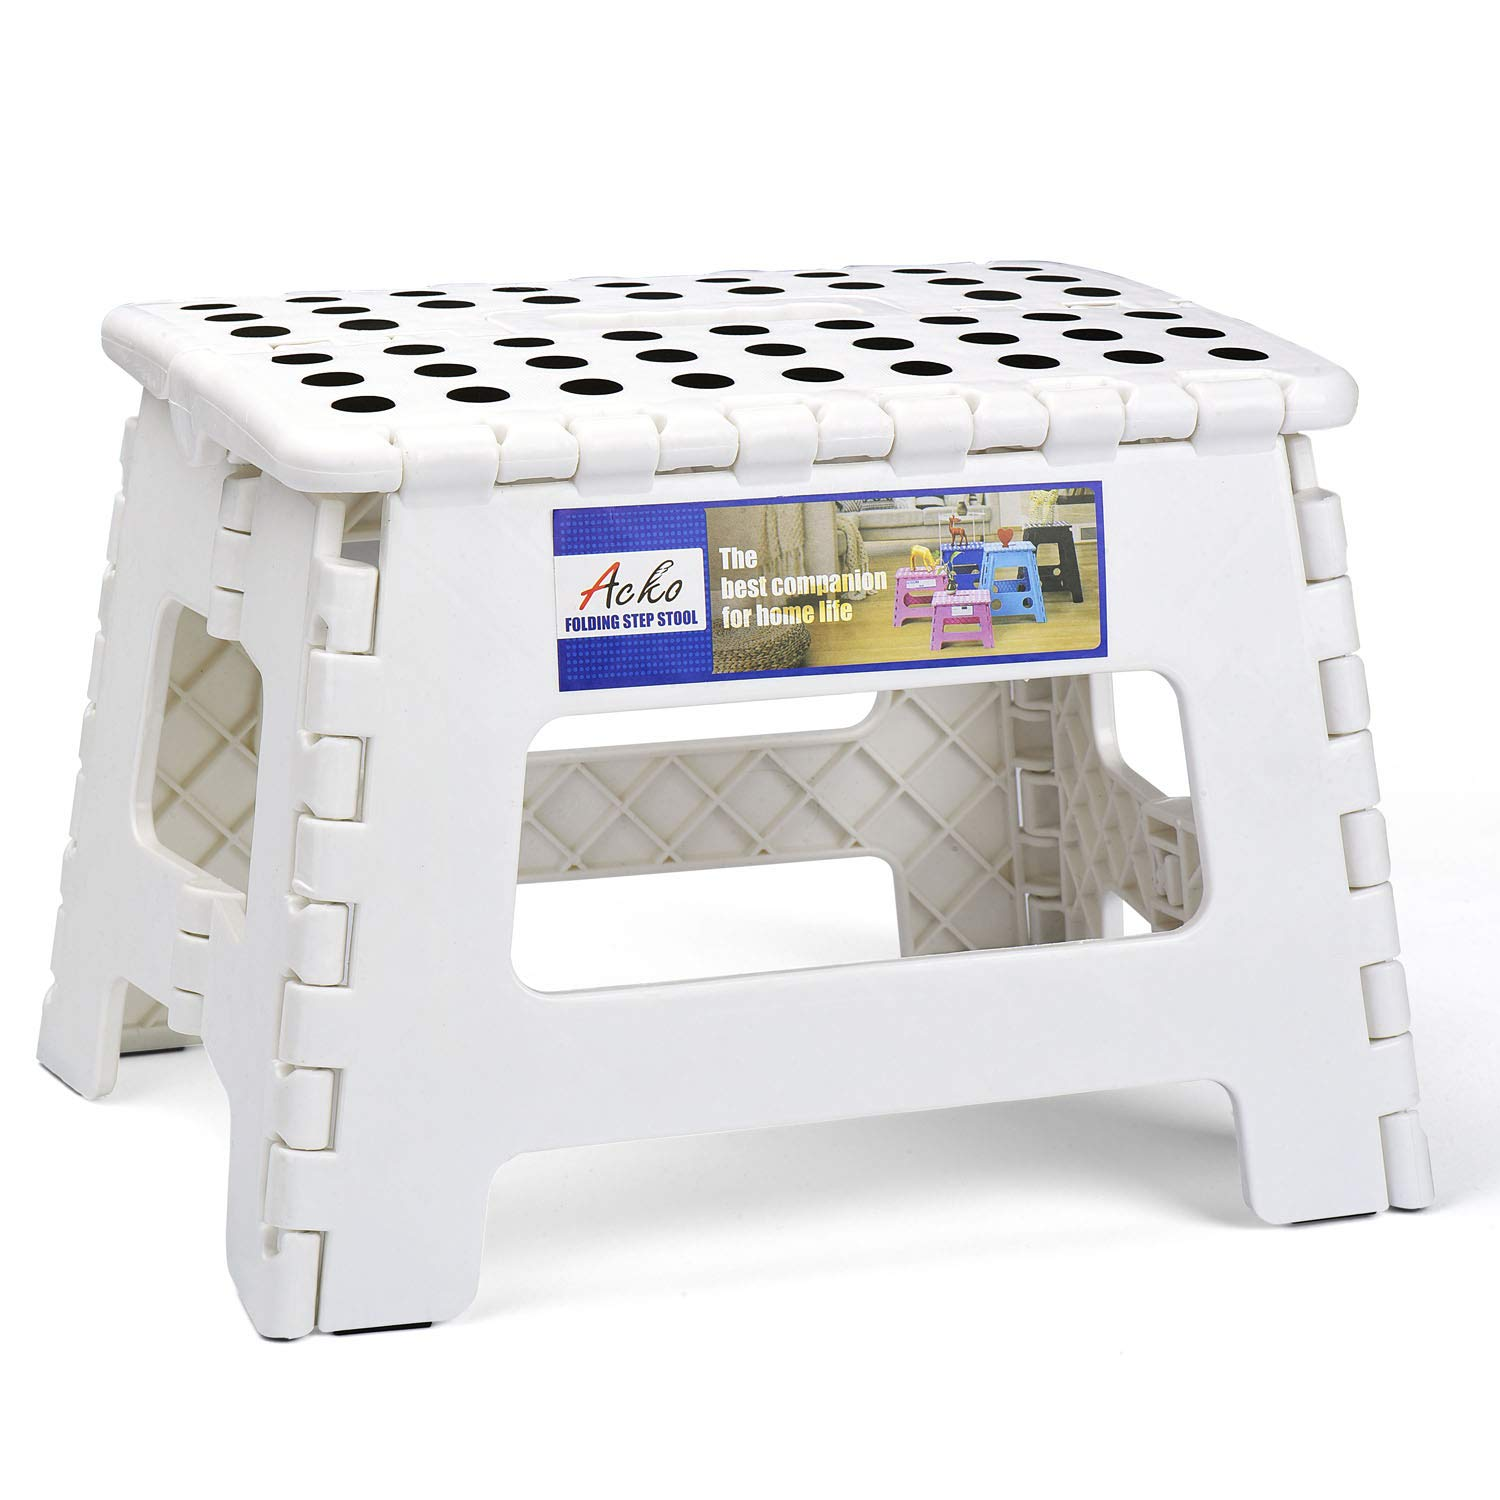 Acko Folding Step Stool Portable Collapsible Plastic Step Stool,9 inch Foldable Step Stool for Kids,Non Slip Folding Stools for Kitchen Bathroom Bedroom (White) by Acko